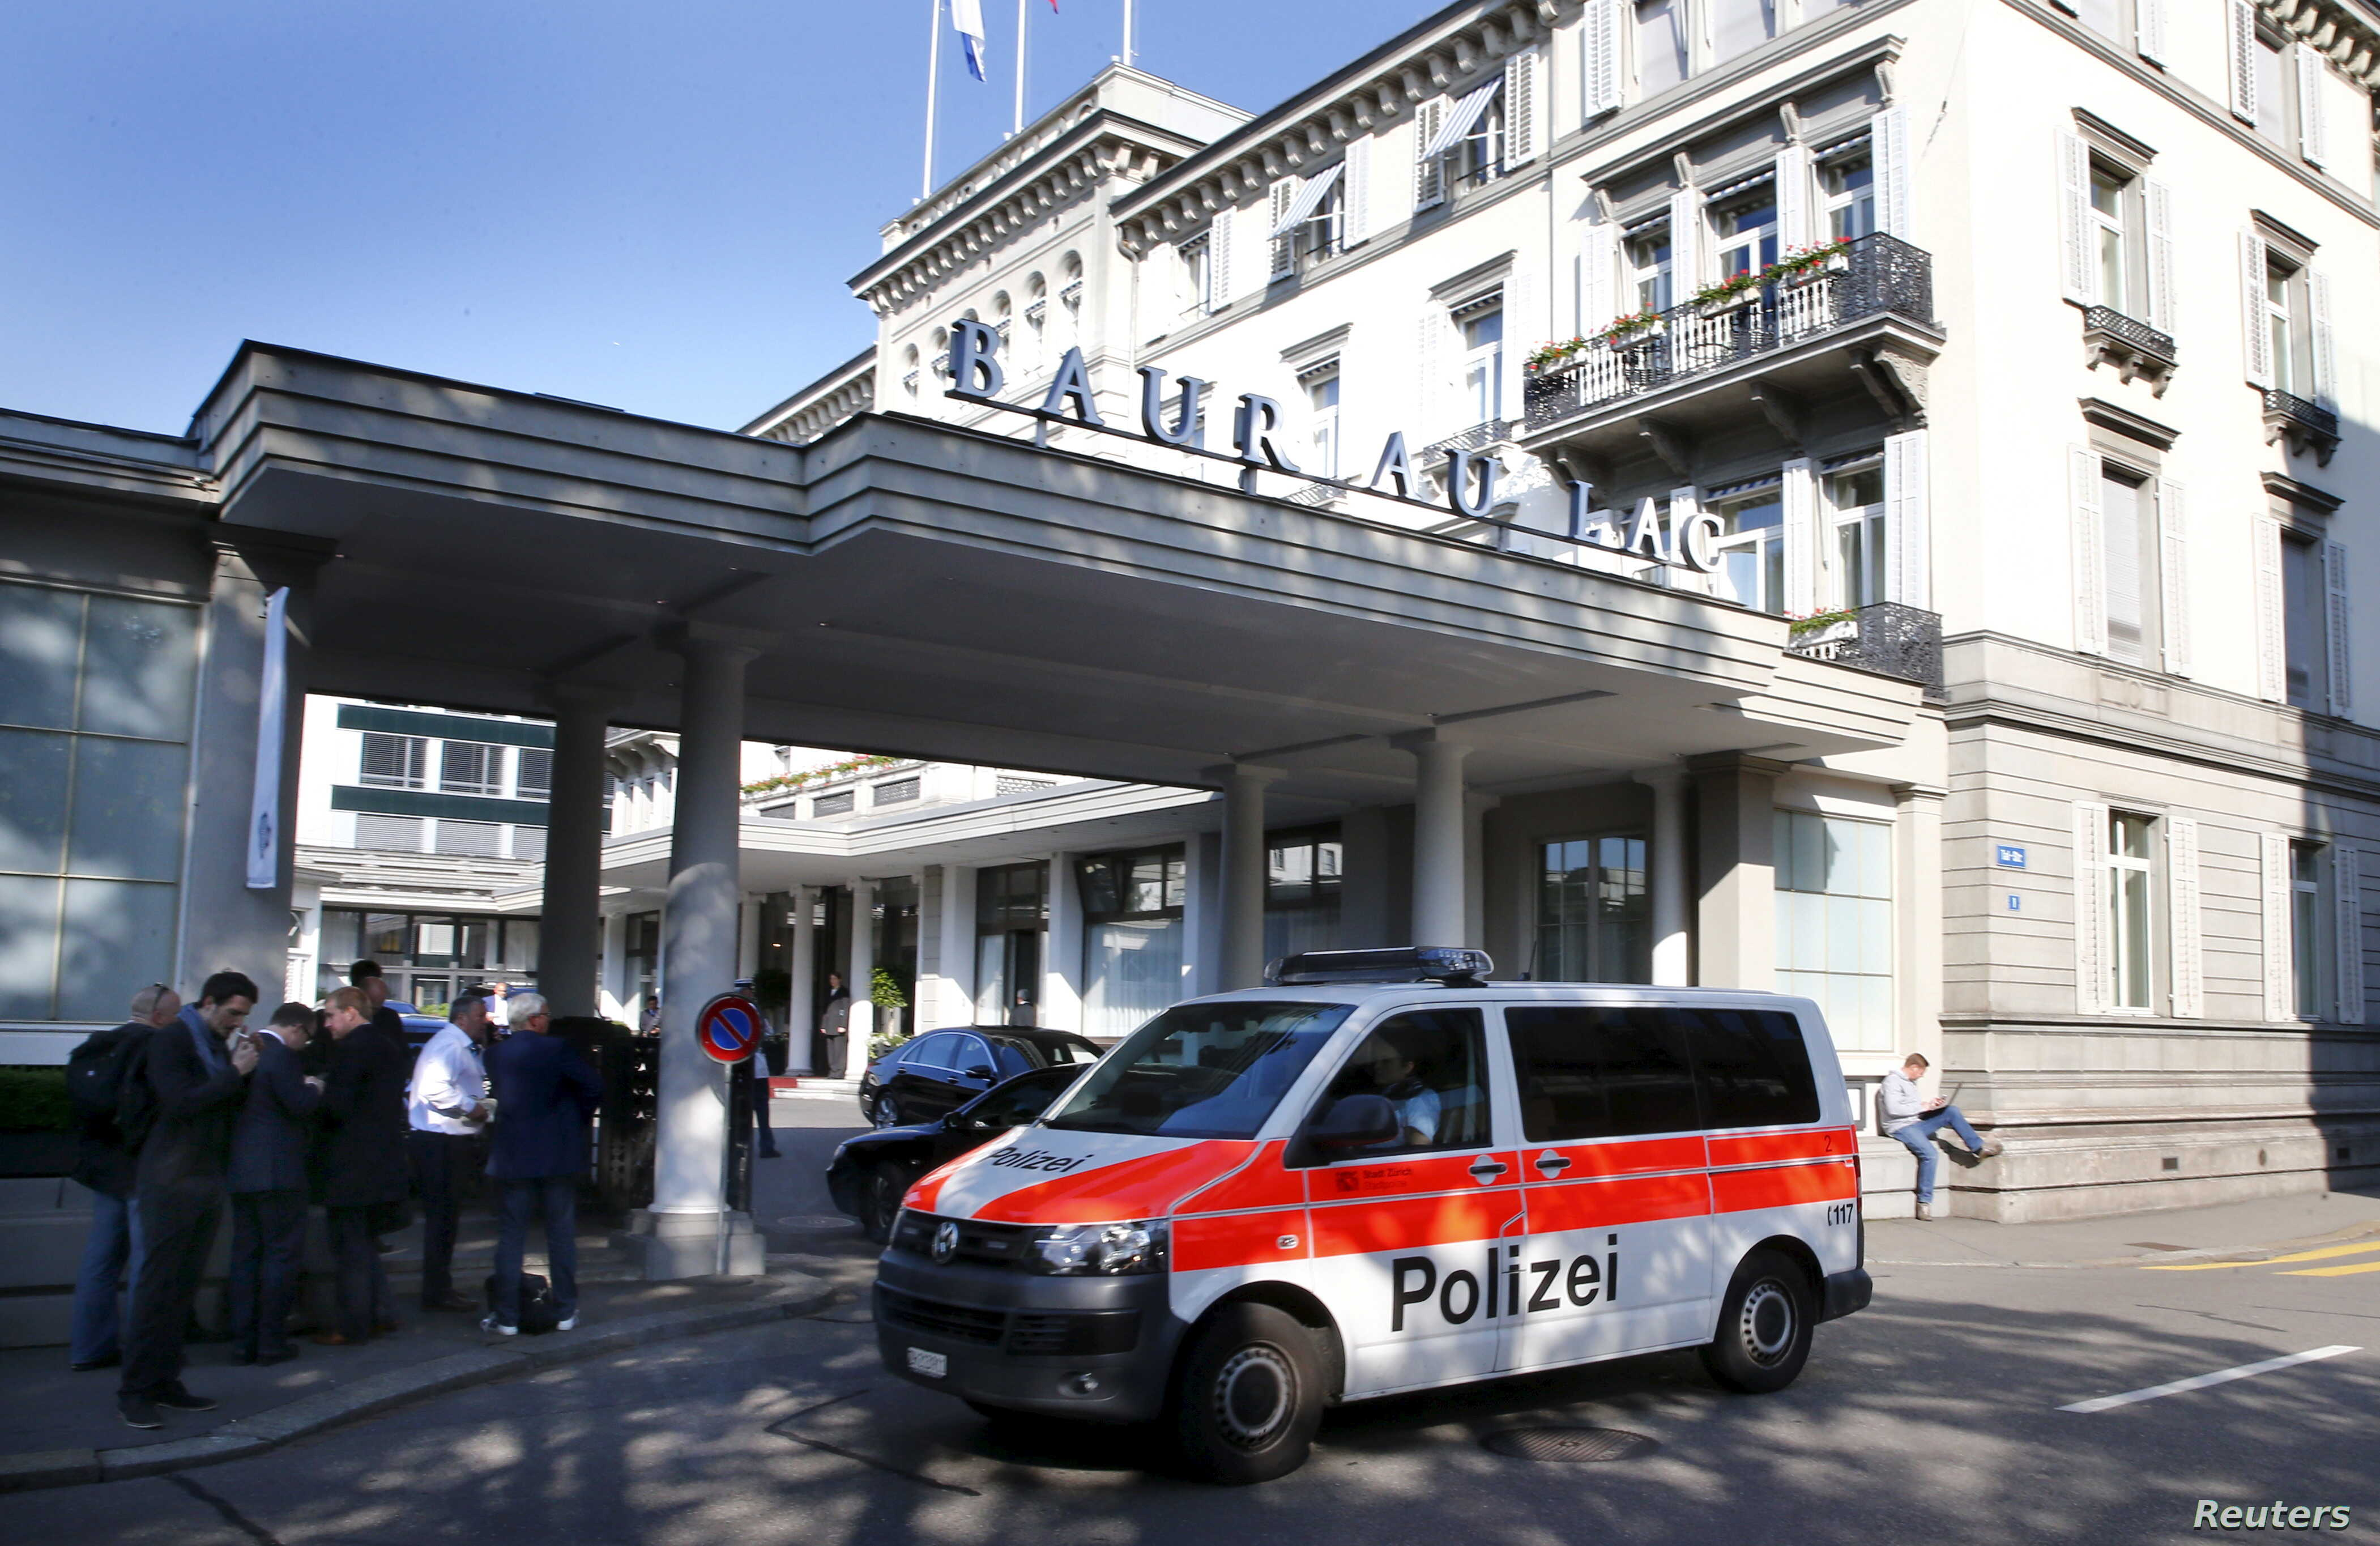 A police van drives past the Baur au Lac hotel in Zurich, Switzerland, May 27, 2015. Six soccer officials were arrested in Zurich on Wednesday and detained pending extradition to the United States over suspected corruption at soccer's governing body